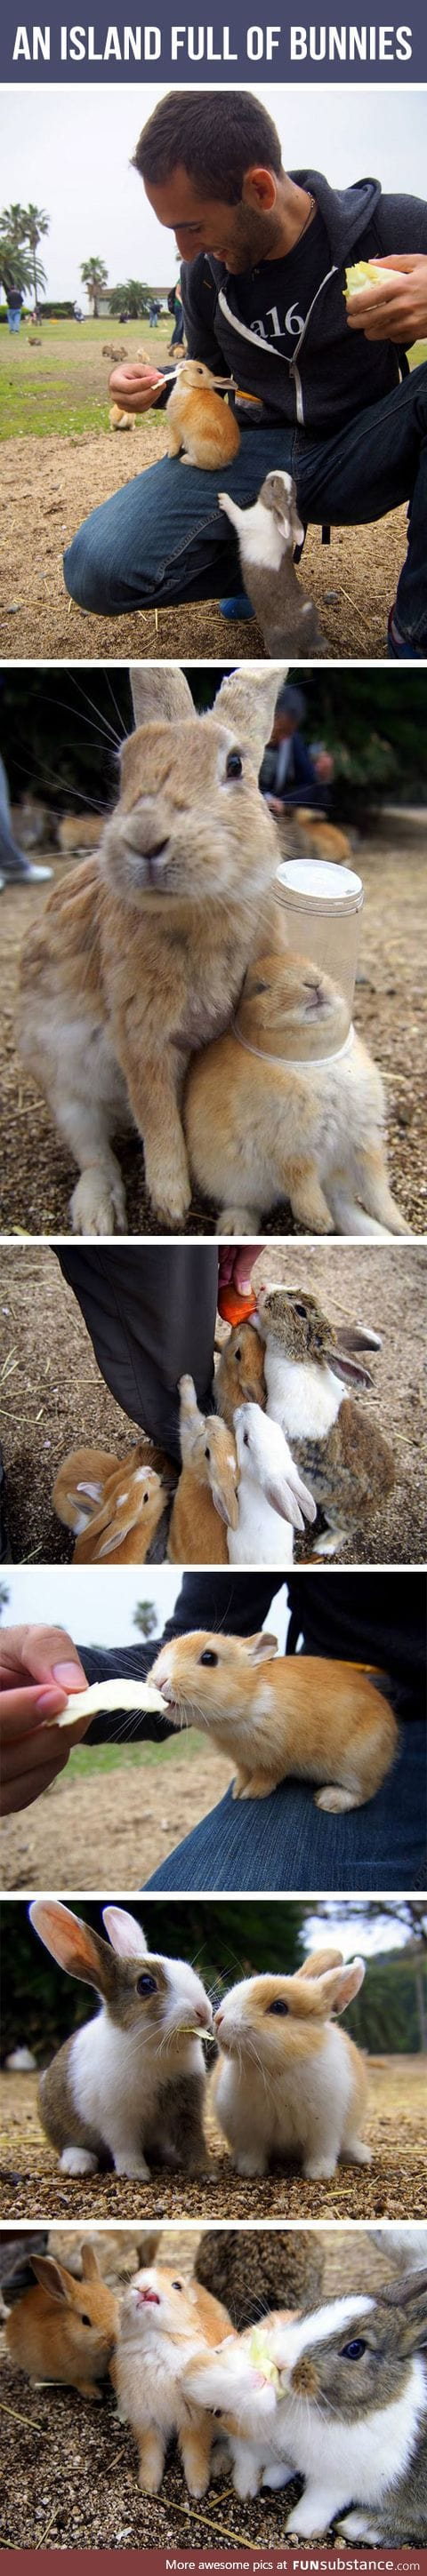 This Place Exists And It's Inhabited By Bunnies